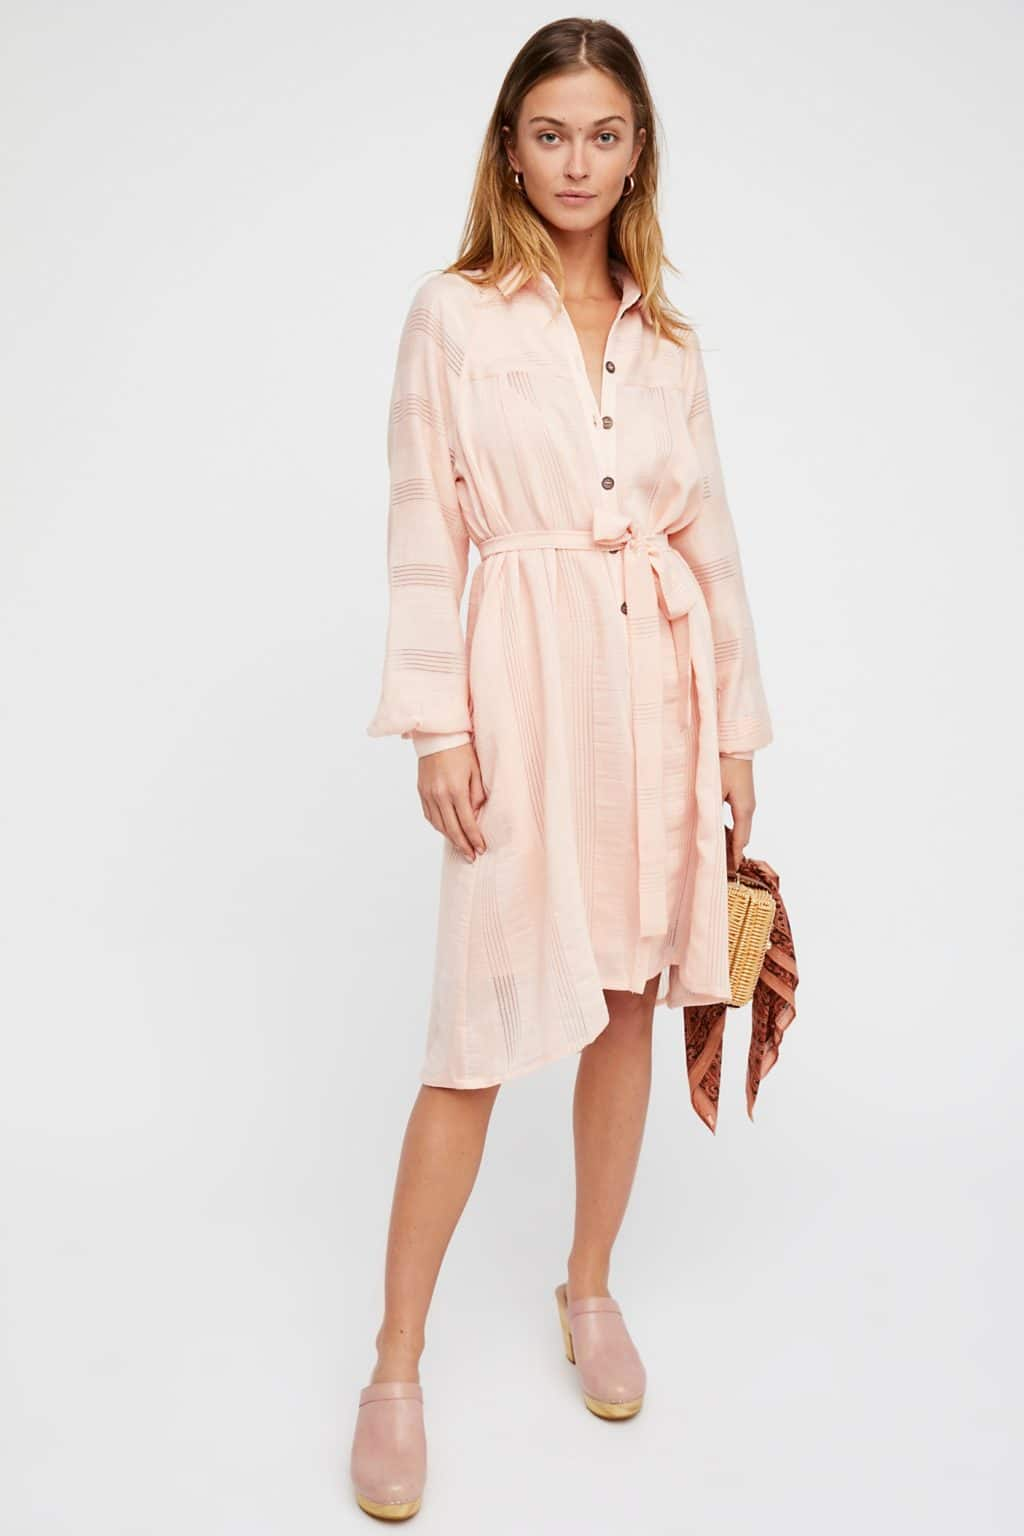 FREEPEOPLE Great Escape Shirt Pink Dress